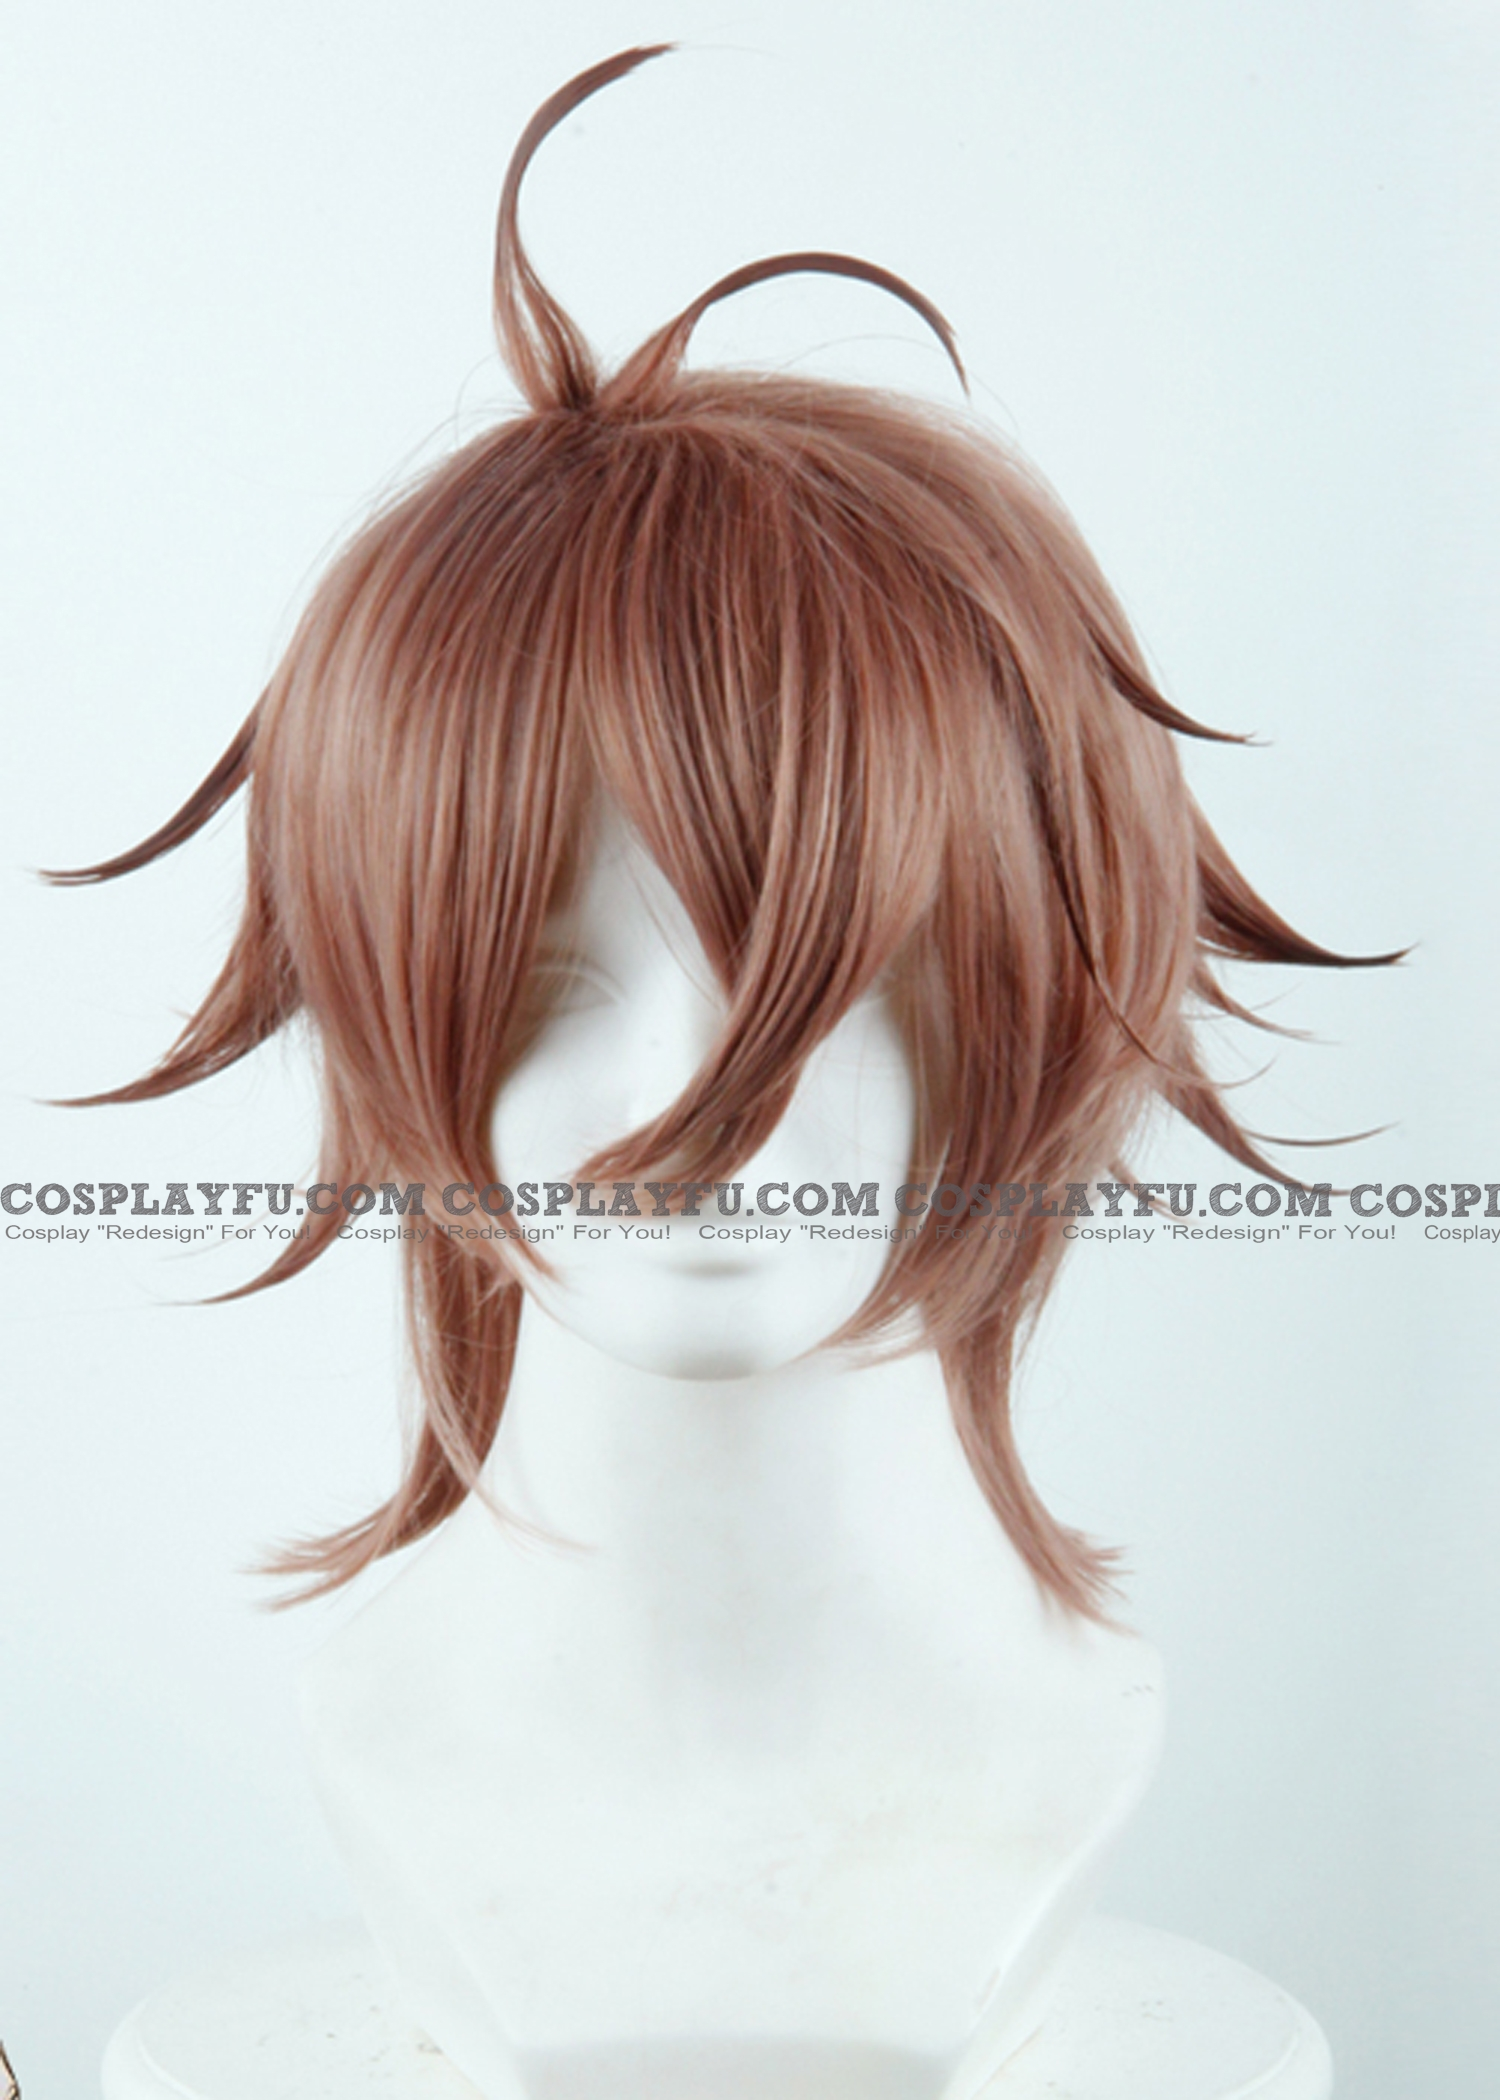 Sieg Wig from Fate Apocrypha